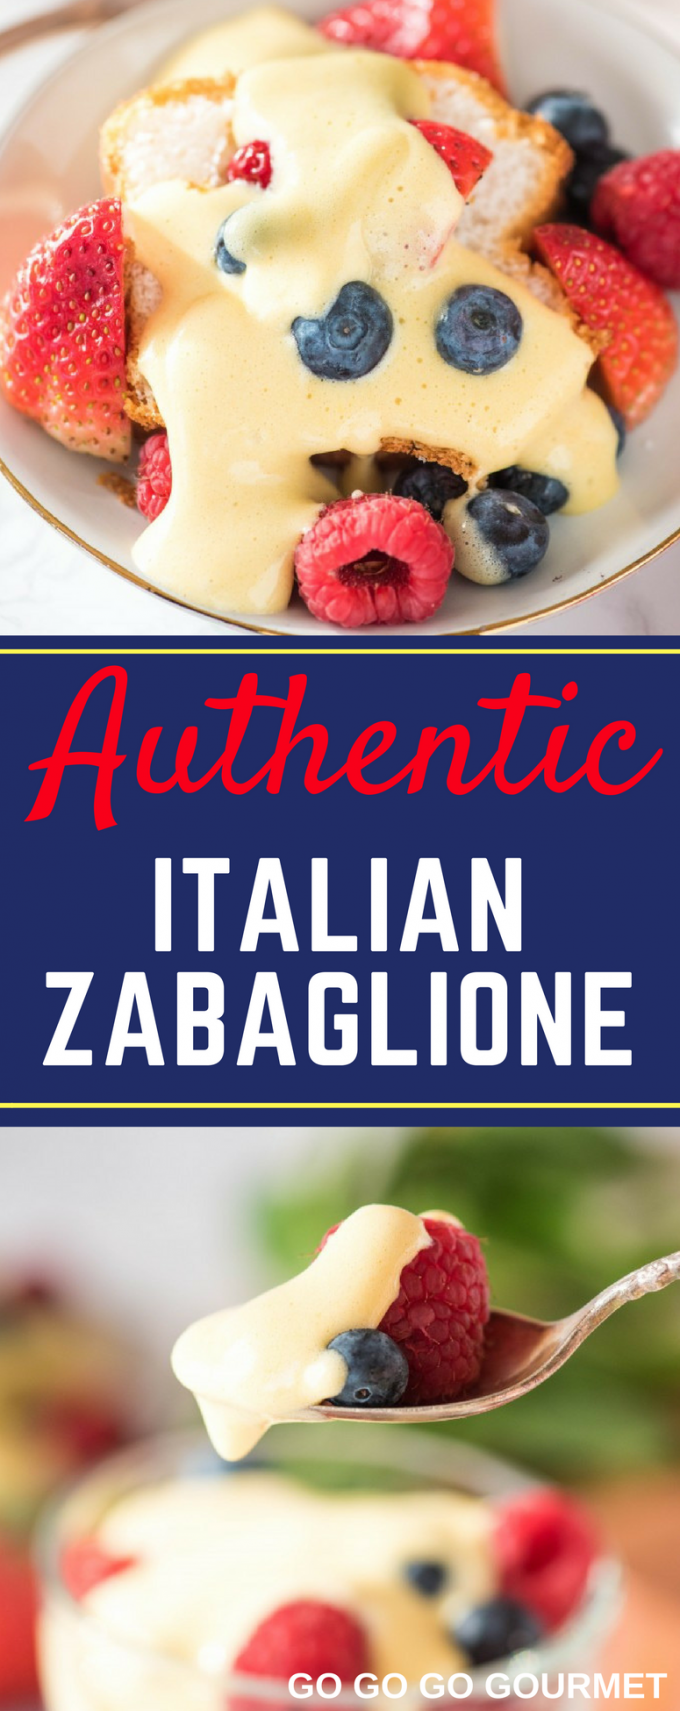 You are going to love this easy Authentic Italian Zabaglione recipe! Cool and creamy custard with berries and cake in a mini trifle. You can make this without wine, but I prefer to use marsala! #italianzabaglione #authenticitaliandesserts #easyzabaglionerecipe #gogogogourmet